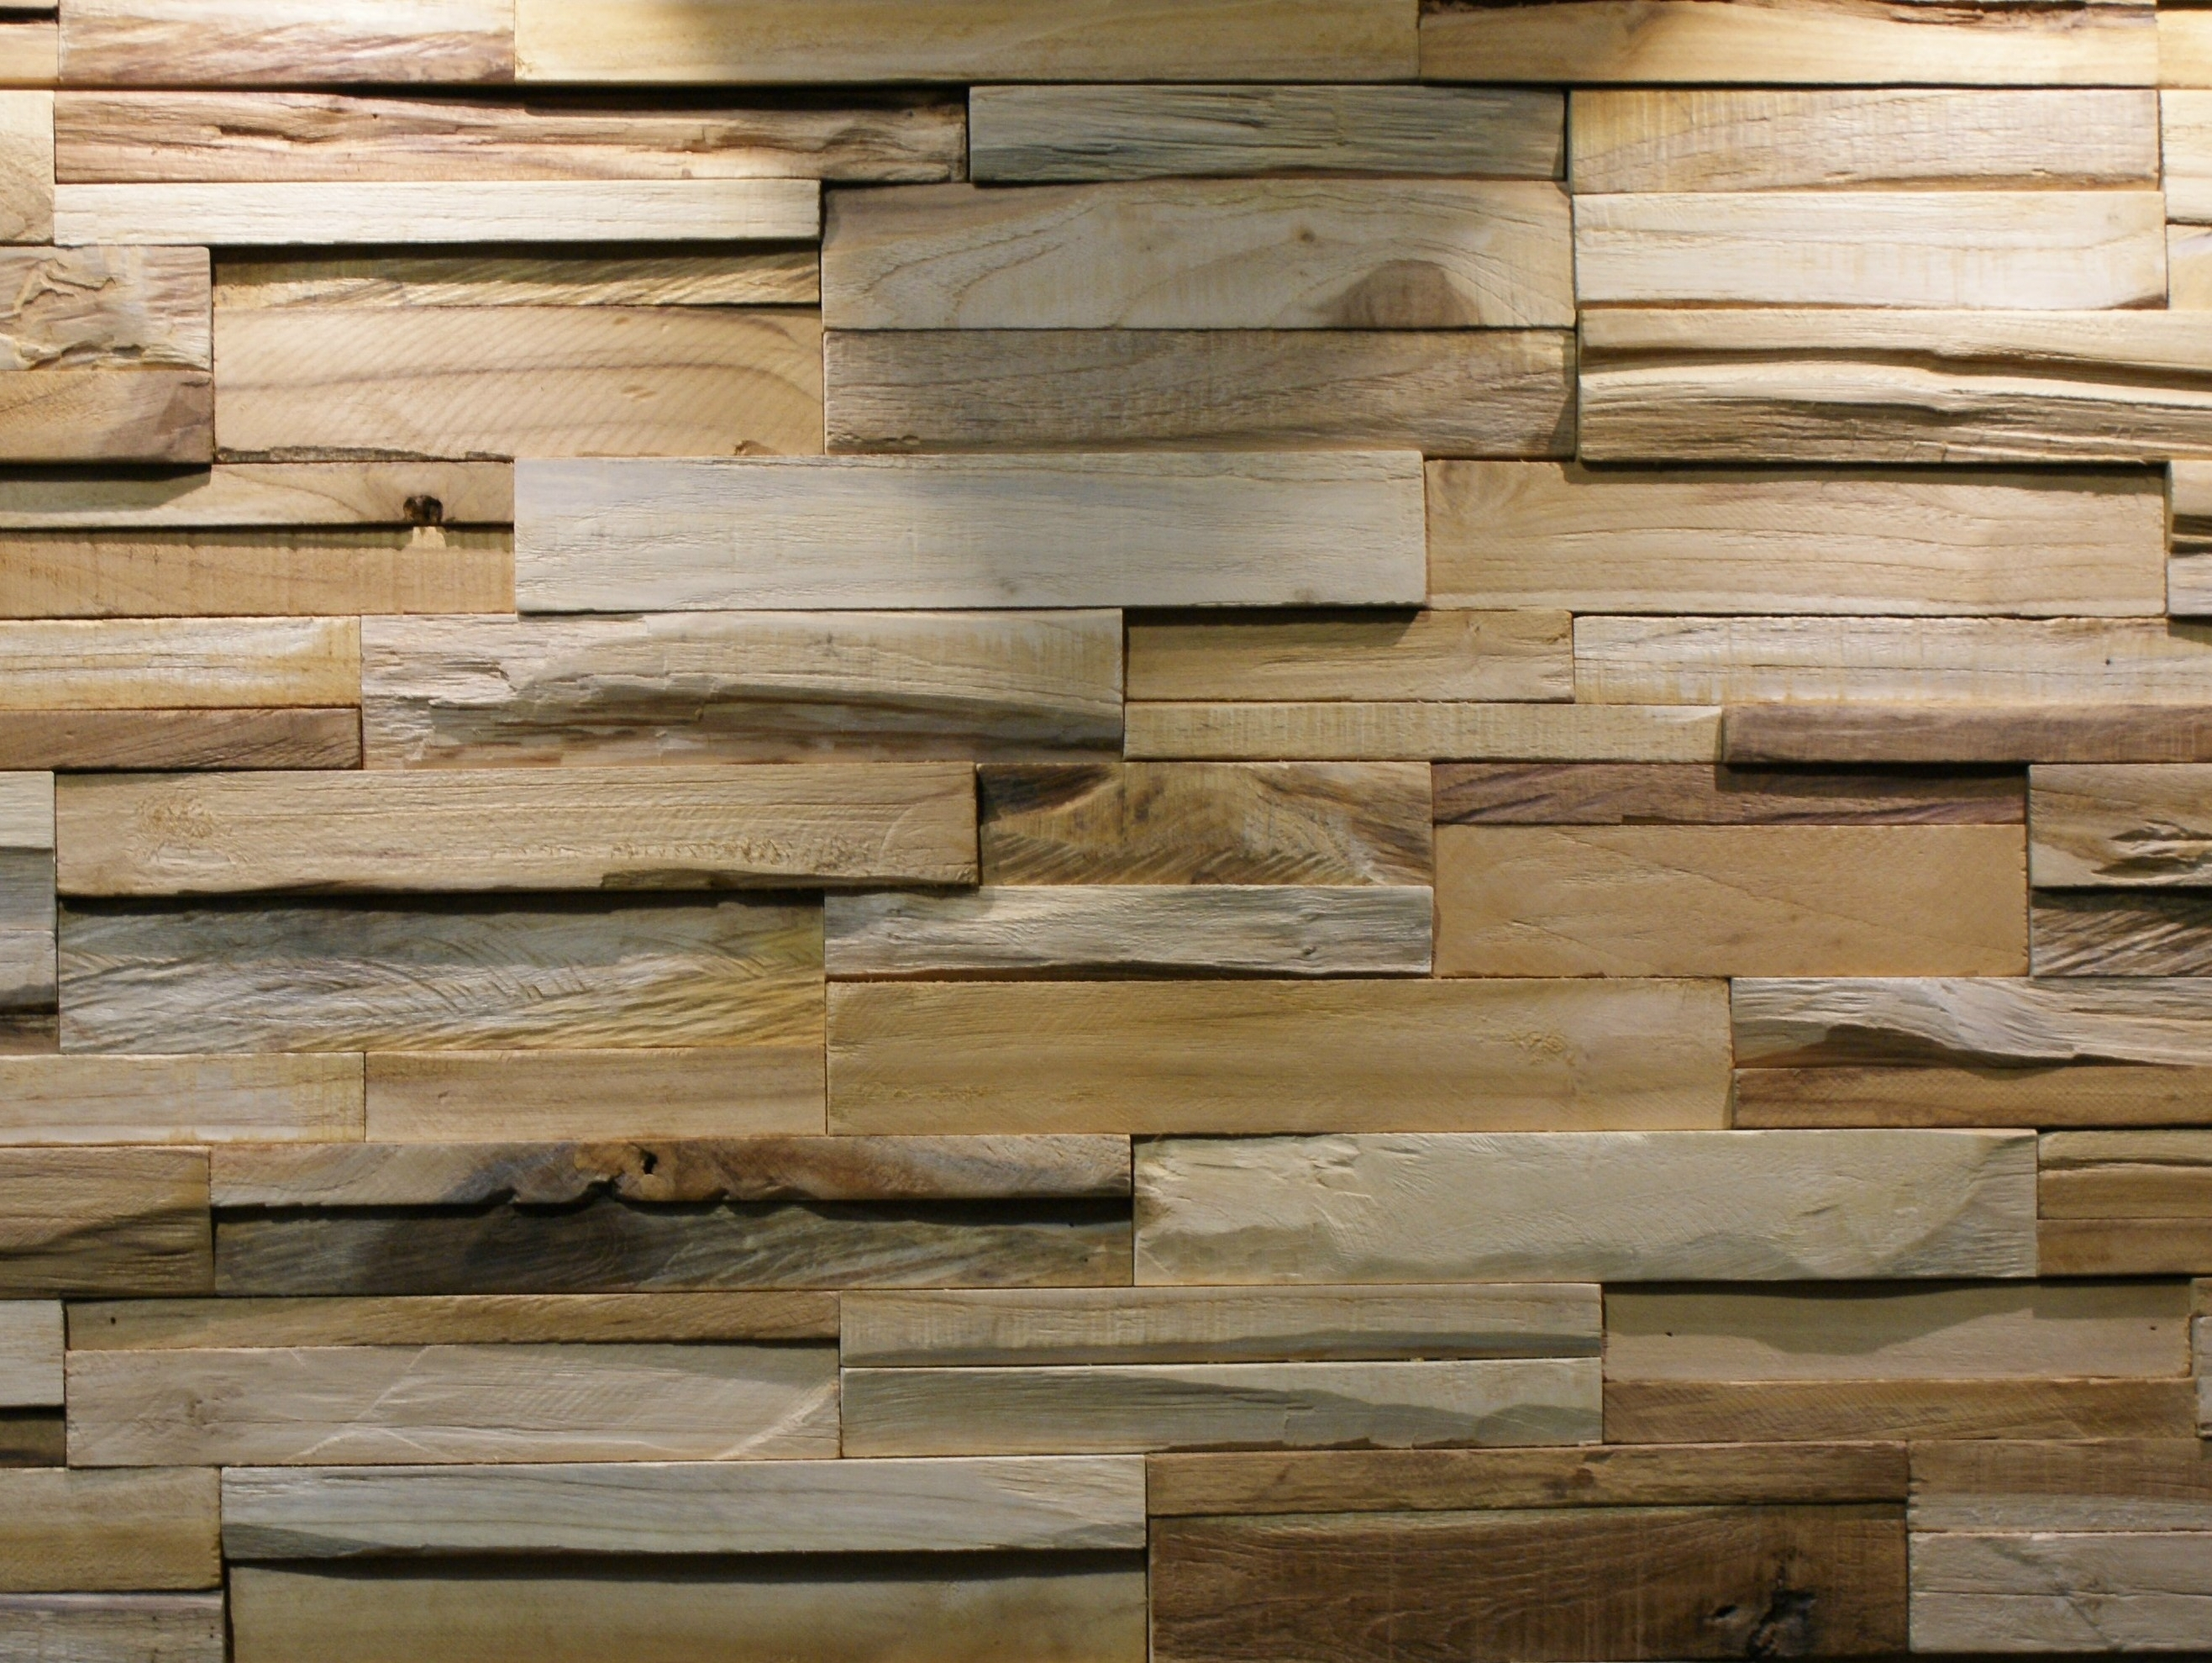 Wood 3D Wall Art In 2017 Wood 3D Wall Claddings Covering Archiproducts Reclaimed Tile Bumpy (View 12 of 15)